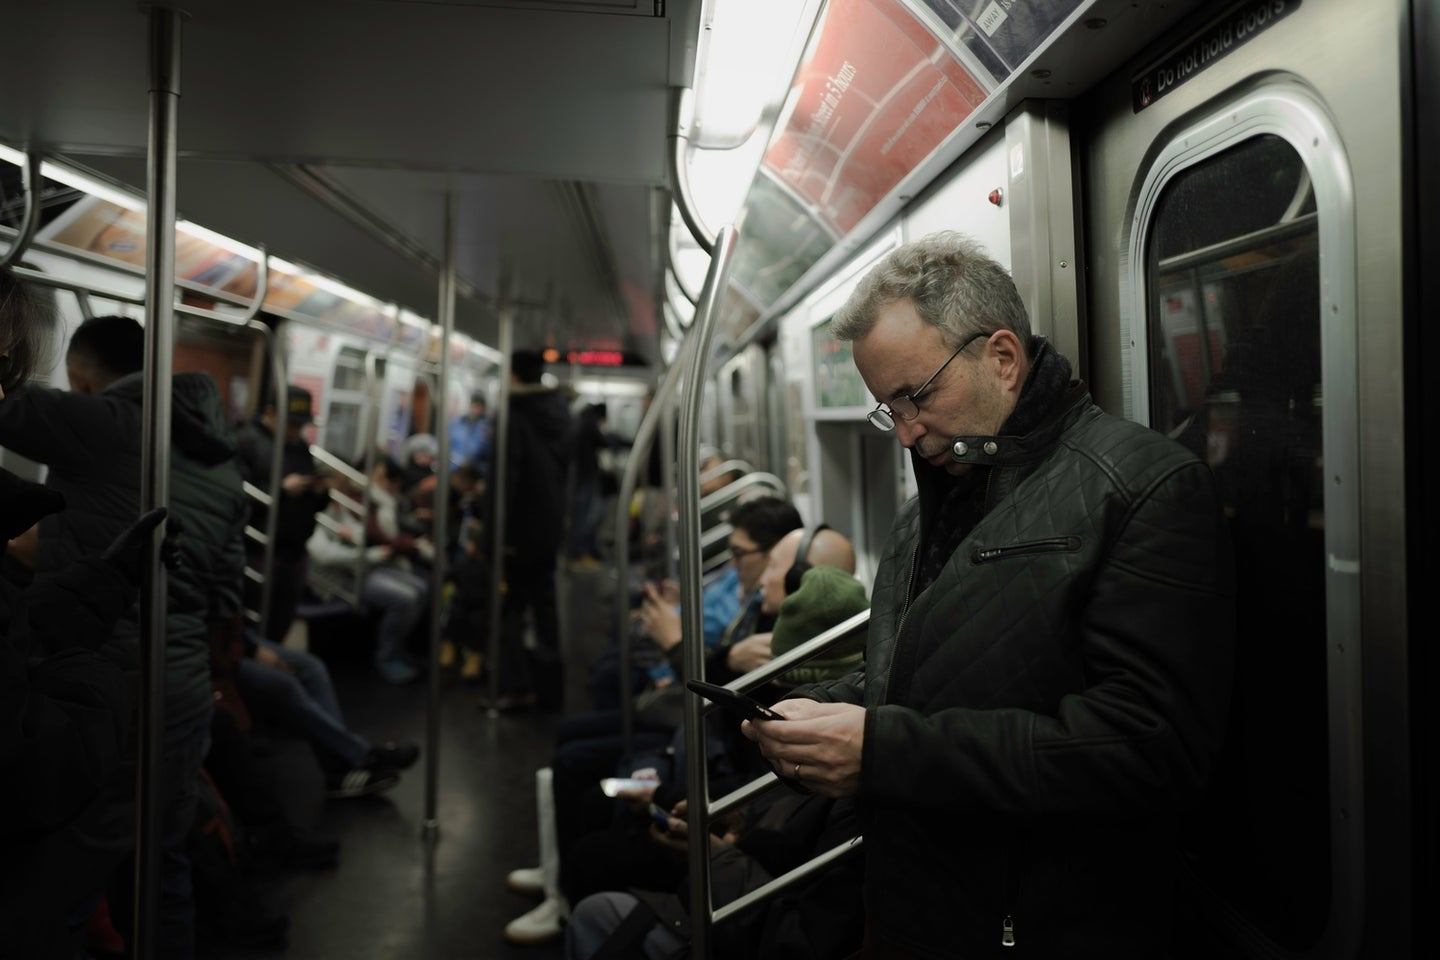 a man using his phone on the New York City subway, while other passengers also use their phones